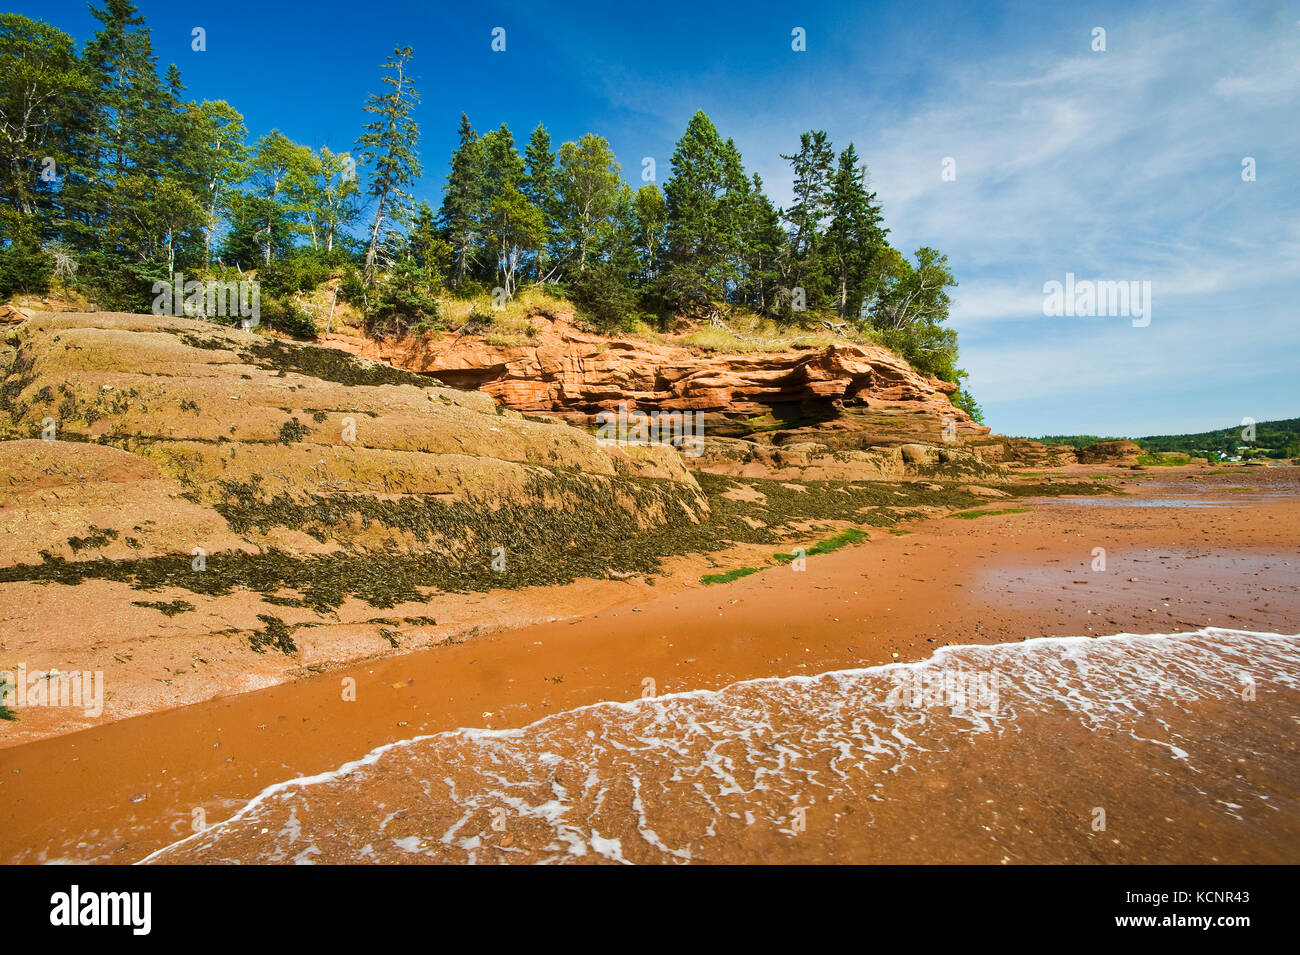 outgoing tide/sandstone shoreline, near Lower Economy in the Minas Basin, Bay of Fundy, Nova Scotia - Stock Image